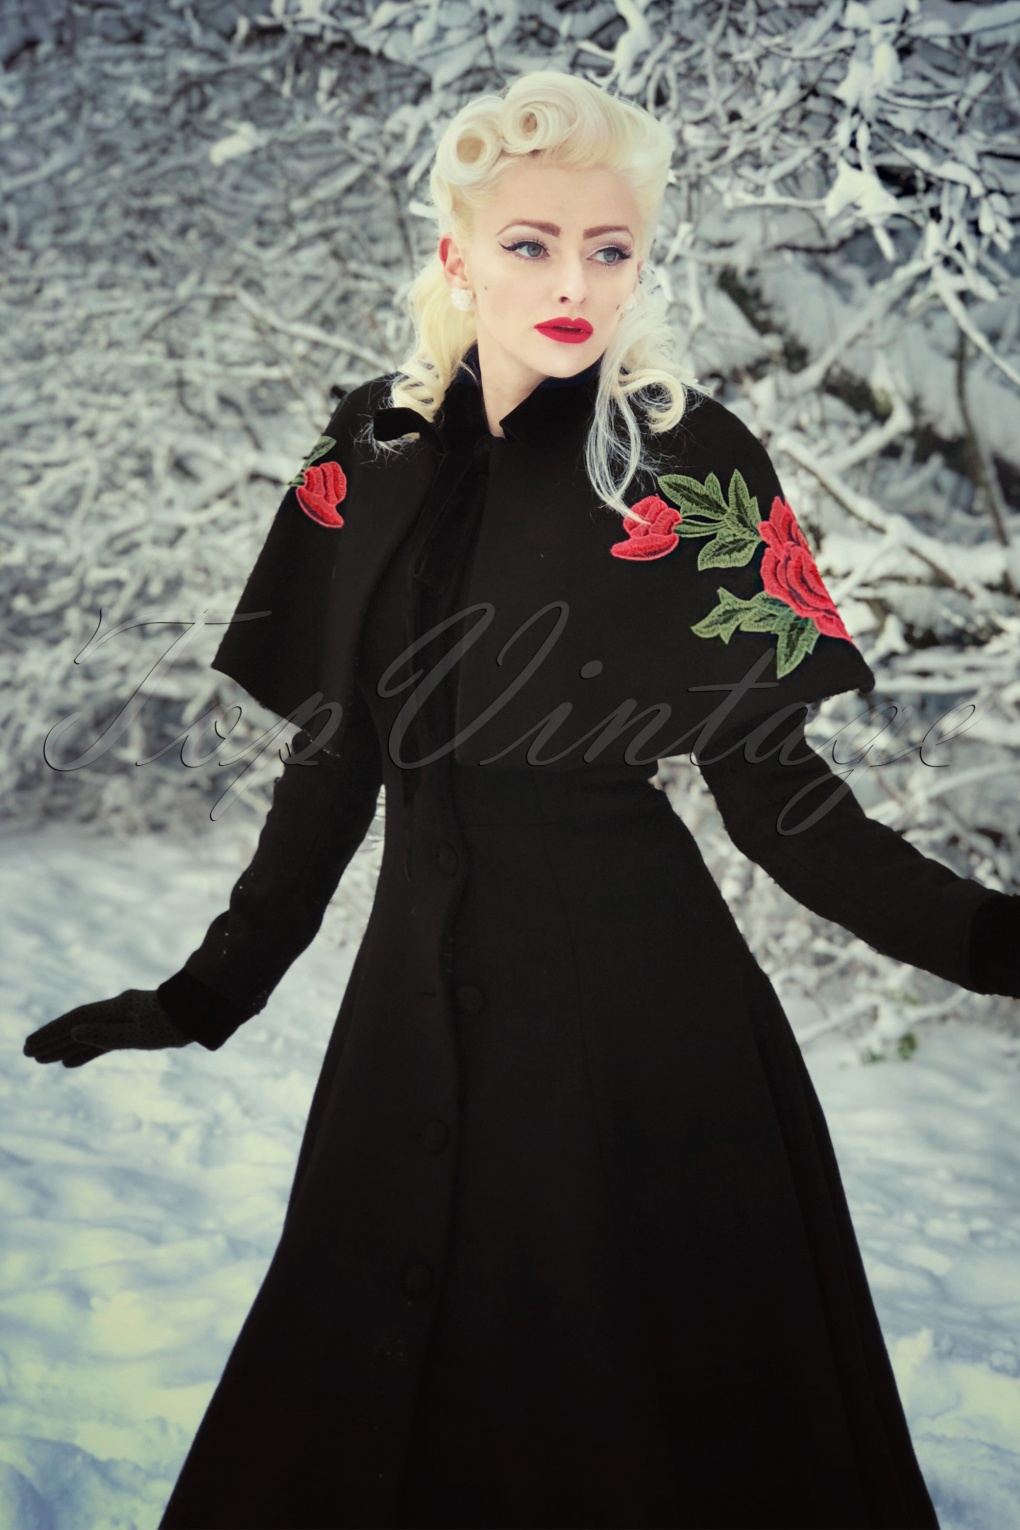 Vintage Coats & Jackets | Retro Coats and Jackets 40s Claudia Coat And Floral Cape in Black Wool £201.53 AT vintagedancer.com